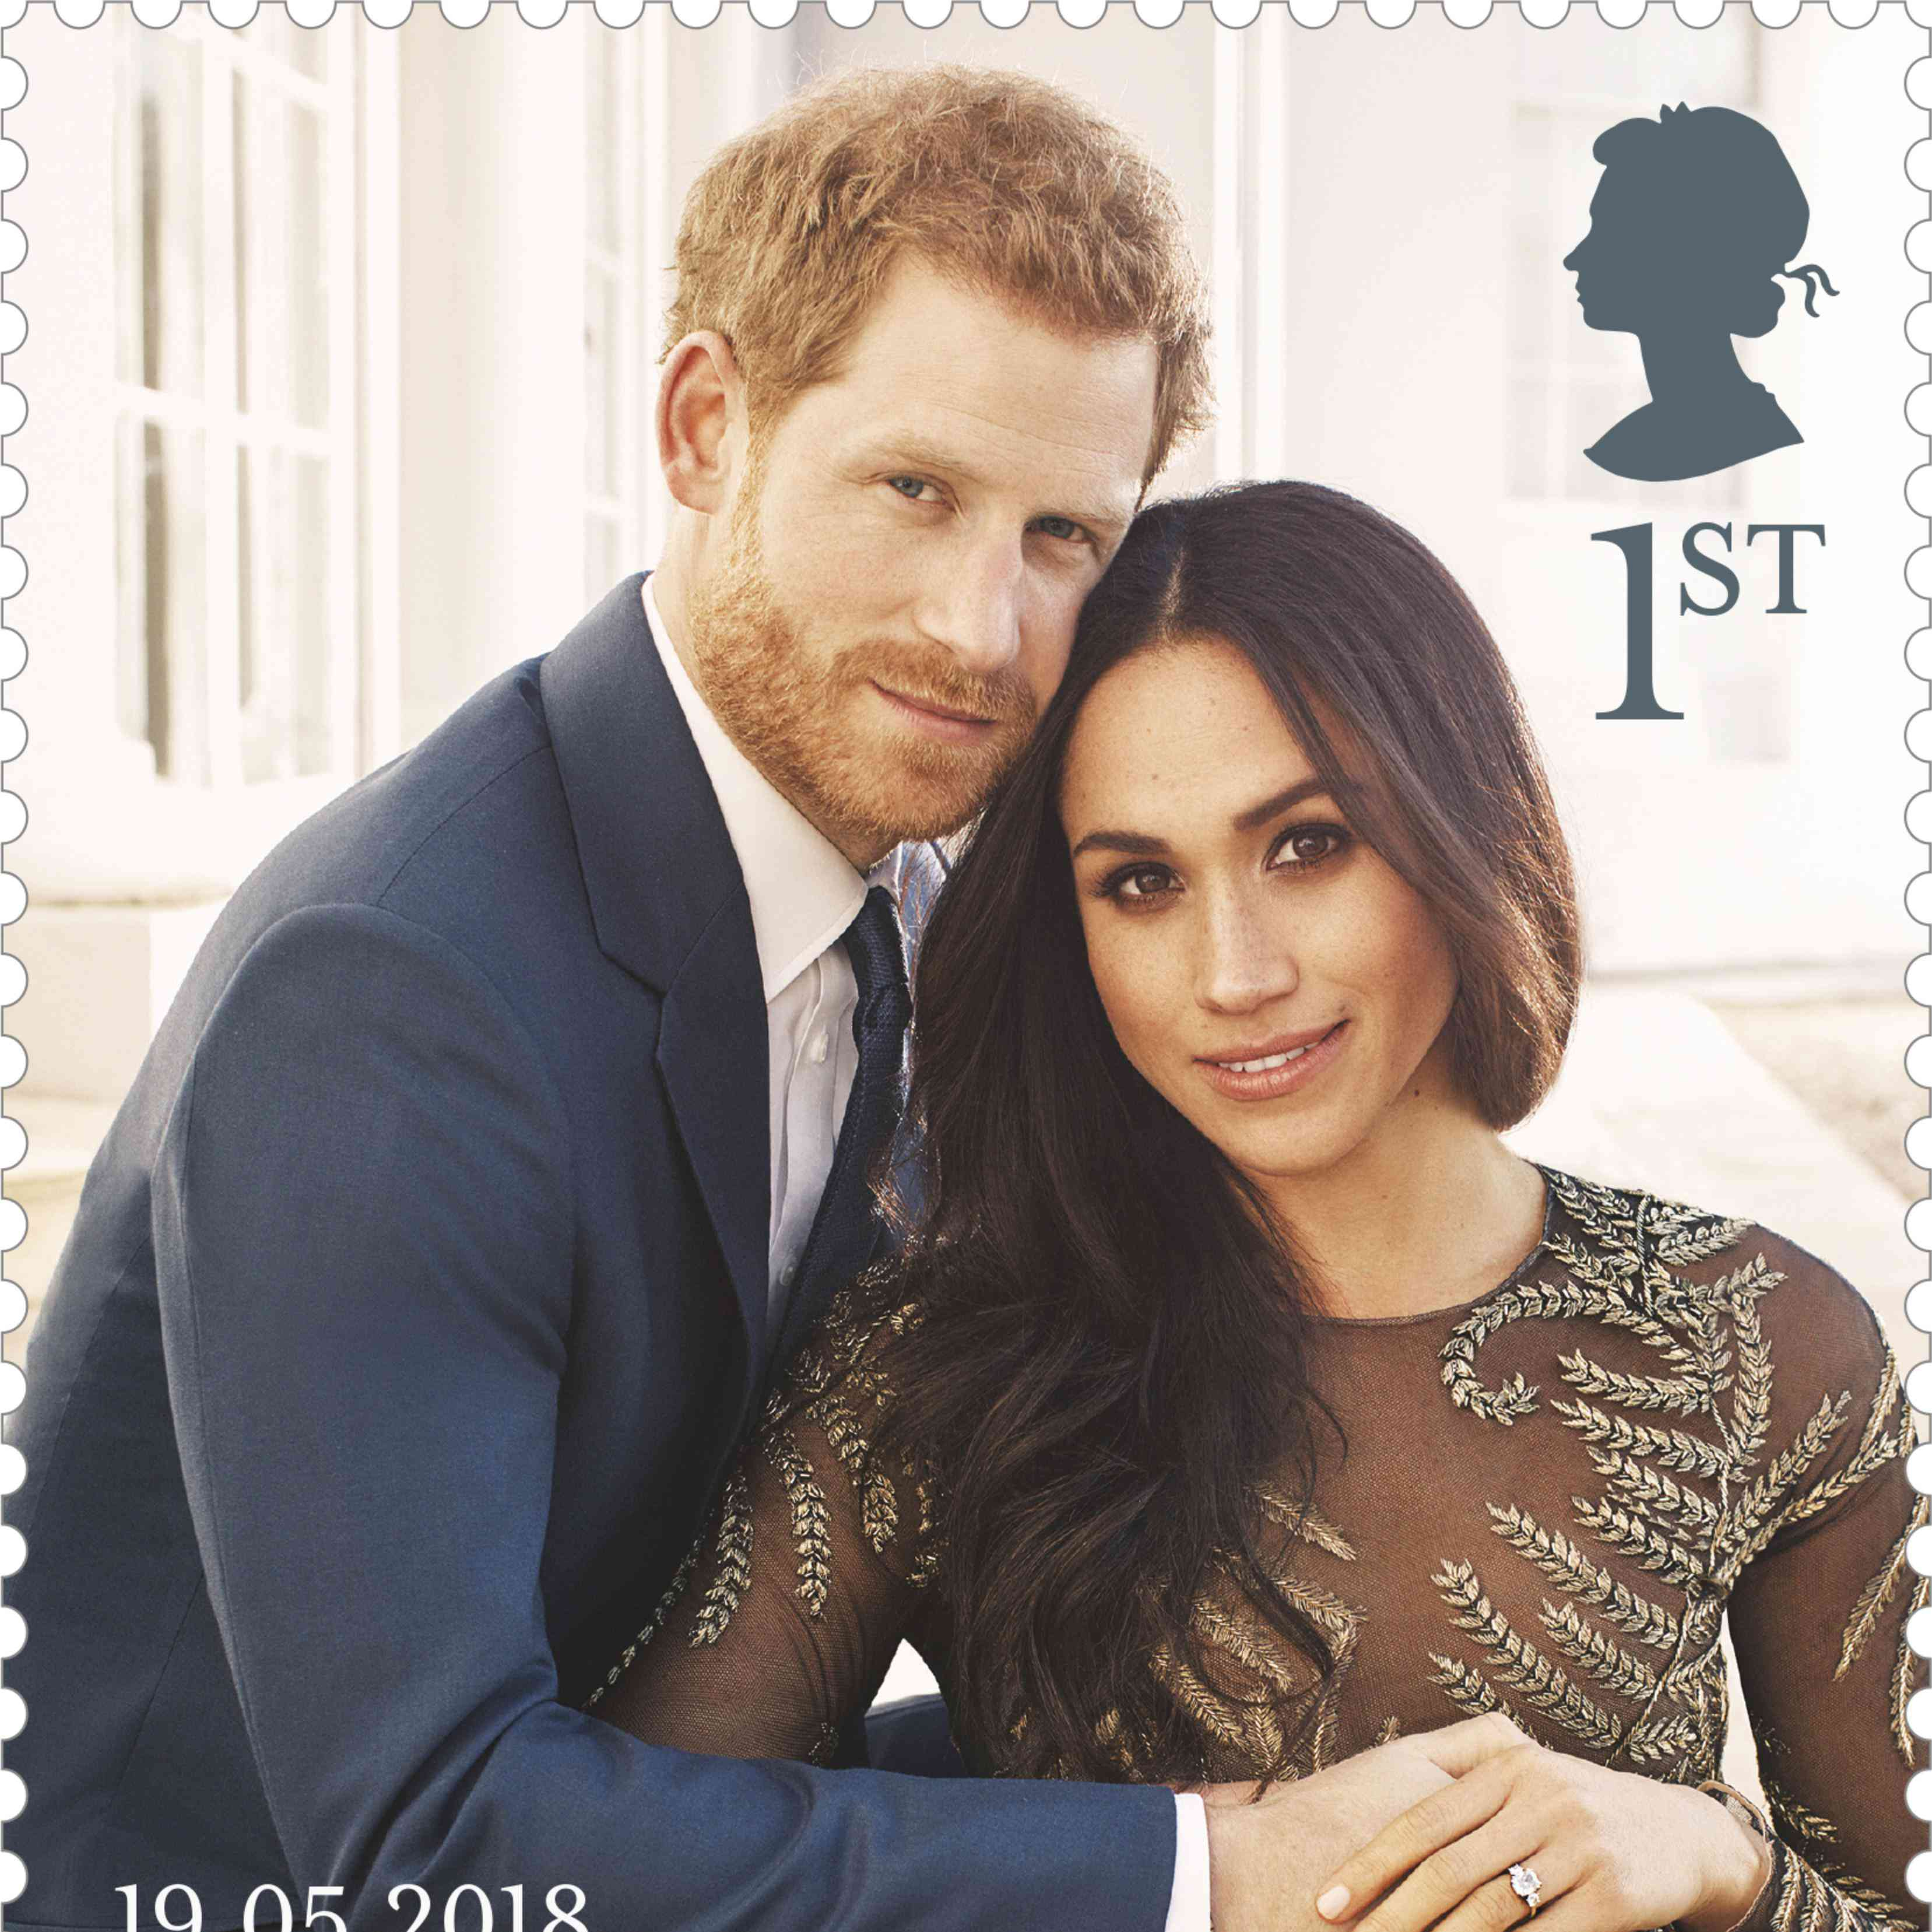 Megan And Harry Wedding.You Can Now Get Royal Wedding Stamps Featuring Megan Markle And